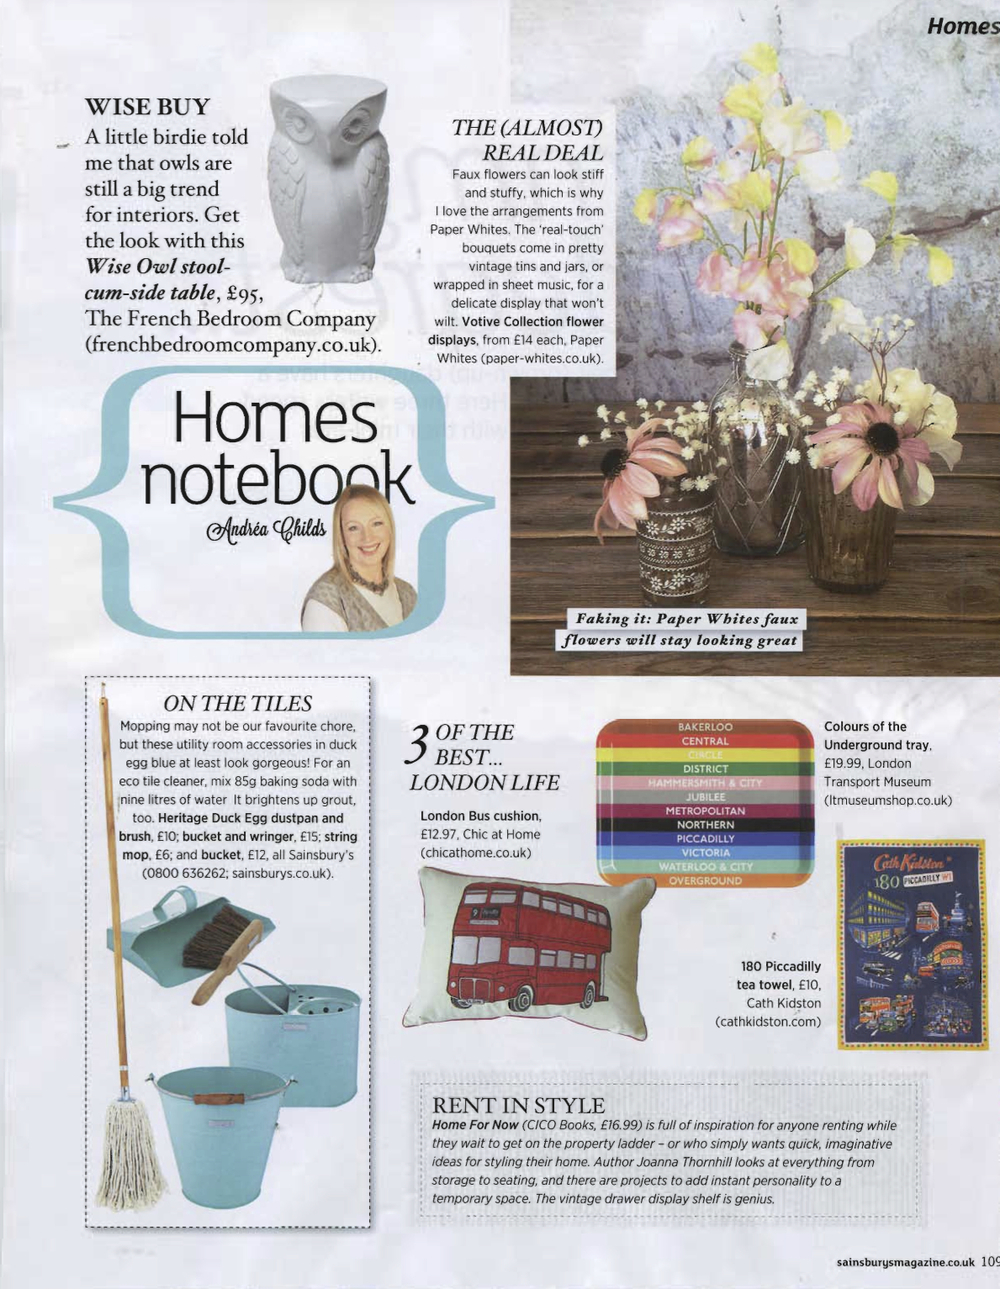 Sainsbury's Magazine had a few kind words to say about Home for Now at the bottom of their Homes Notebook page, March 2014